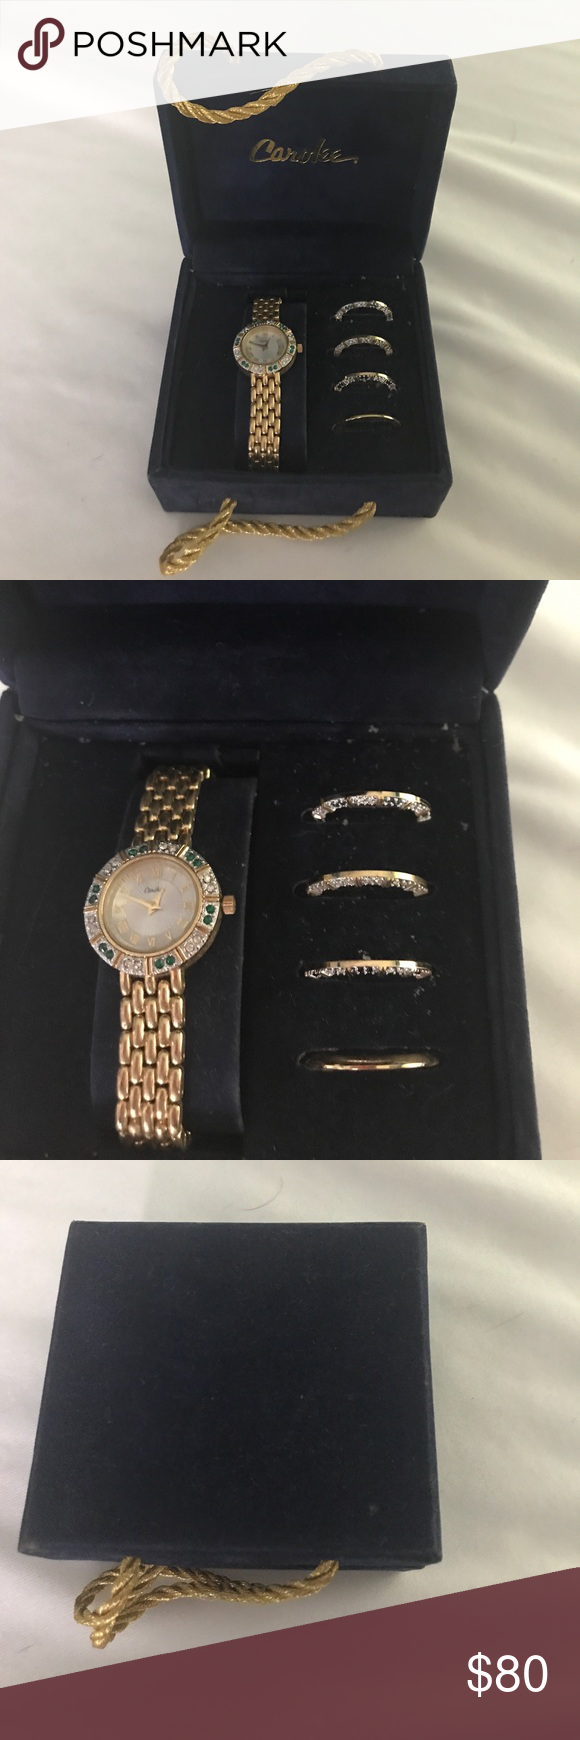 fashionwindows goldpearltogglewatch launches carolee watch toggle watches pearl gold network collection